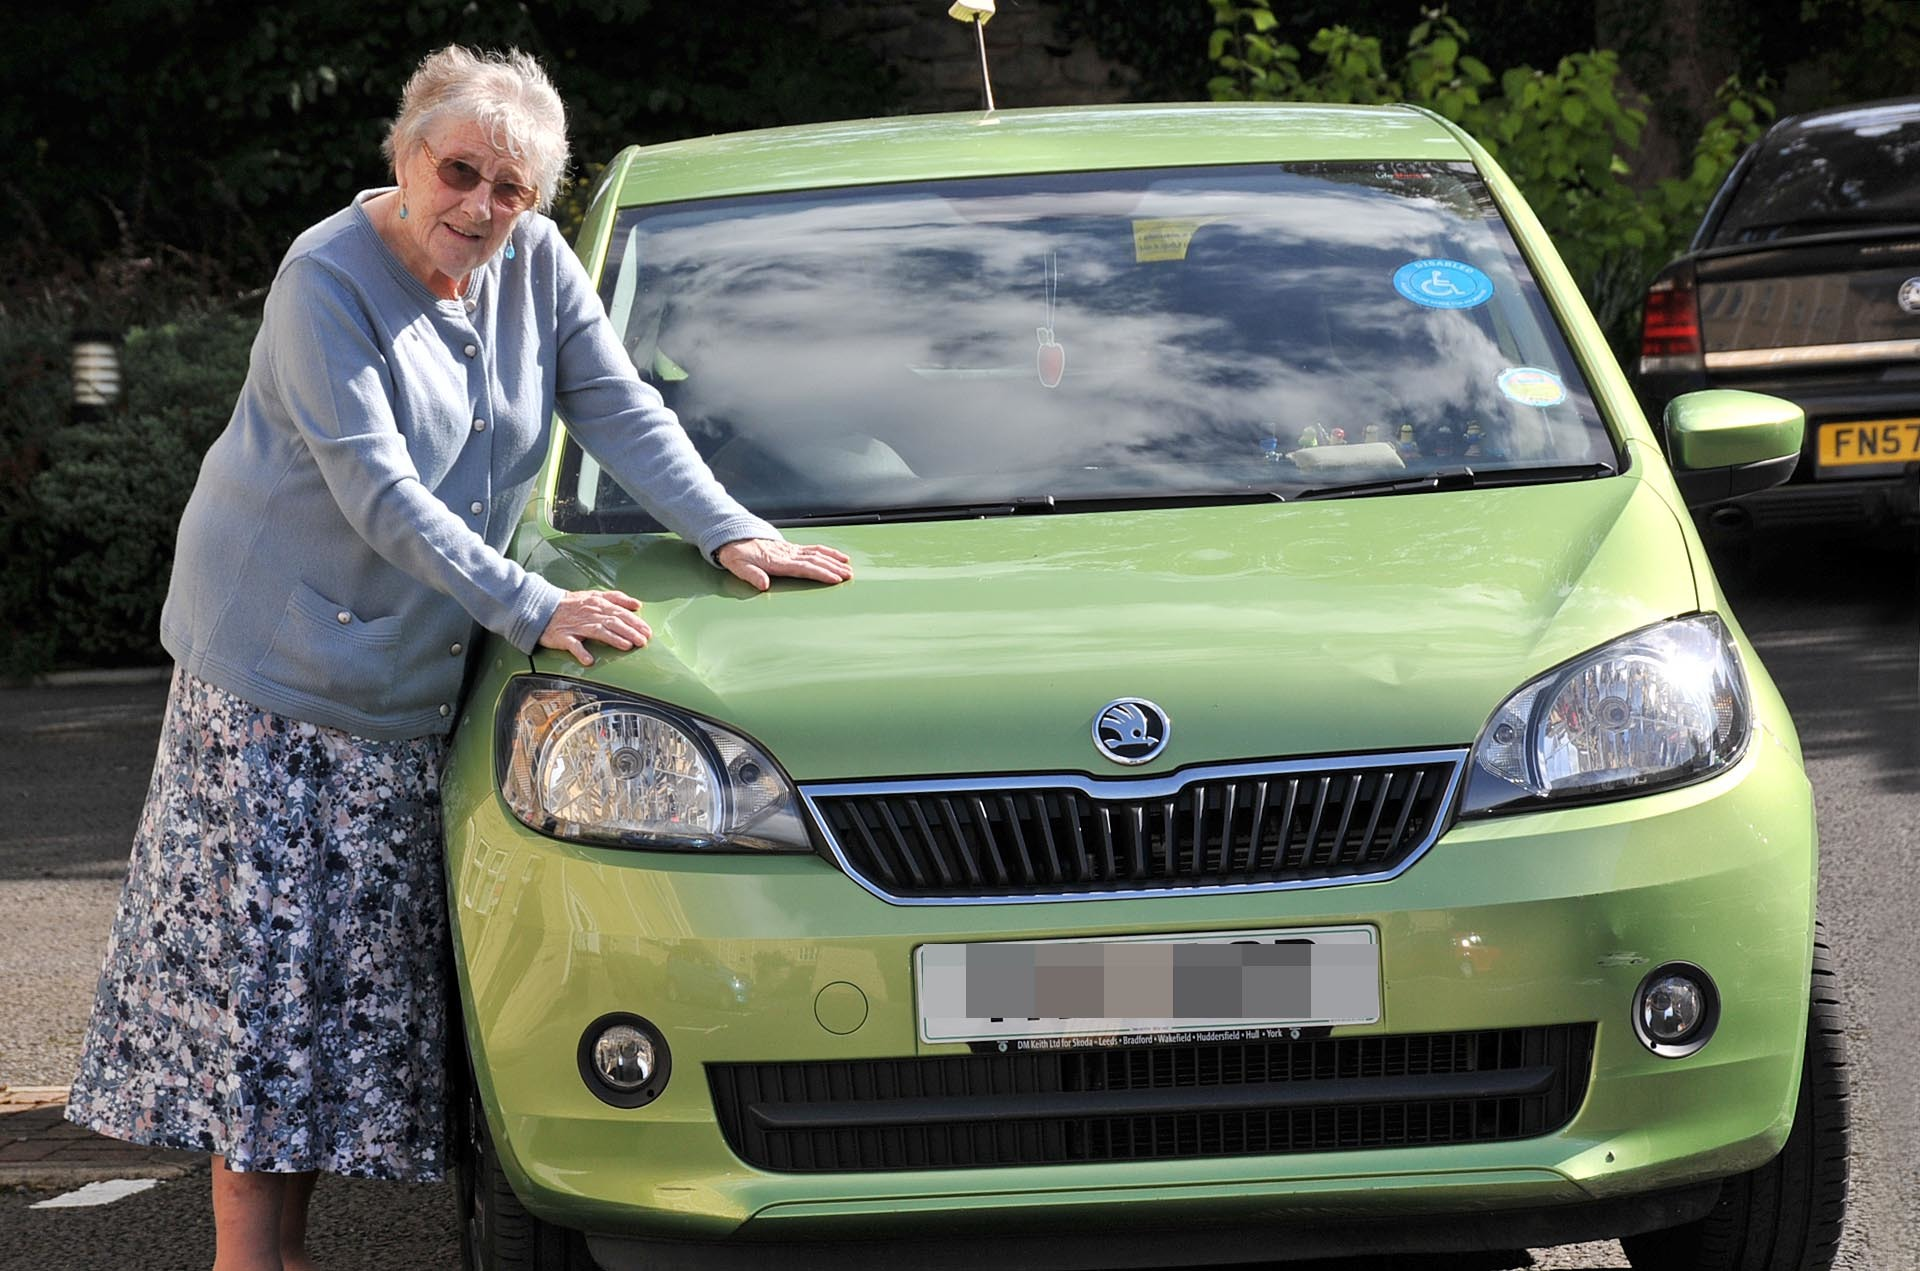 Car deal trauma for great-granny